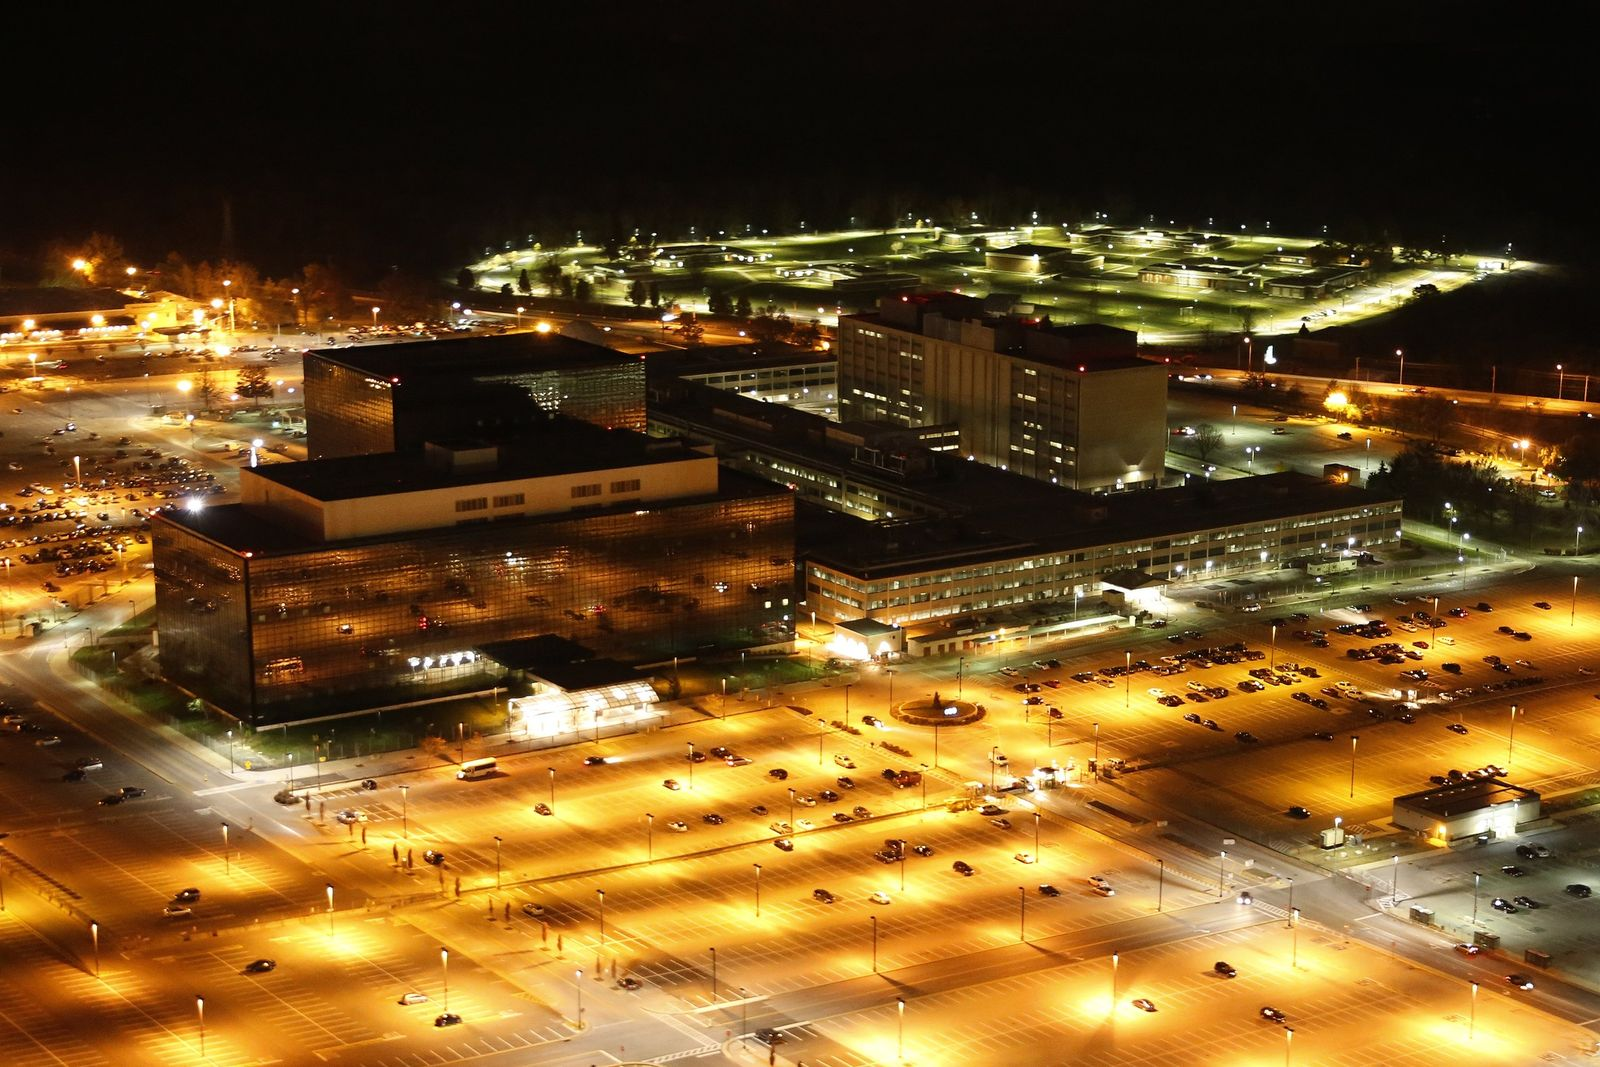 Zentrale der National Security Agency / NSA